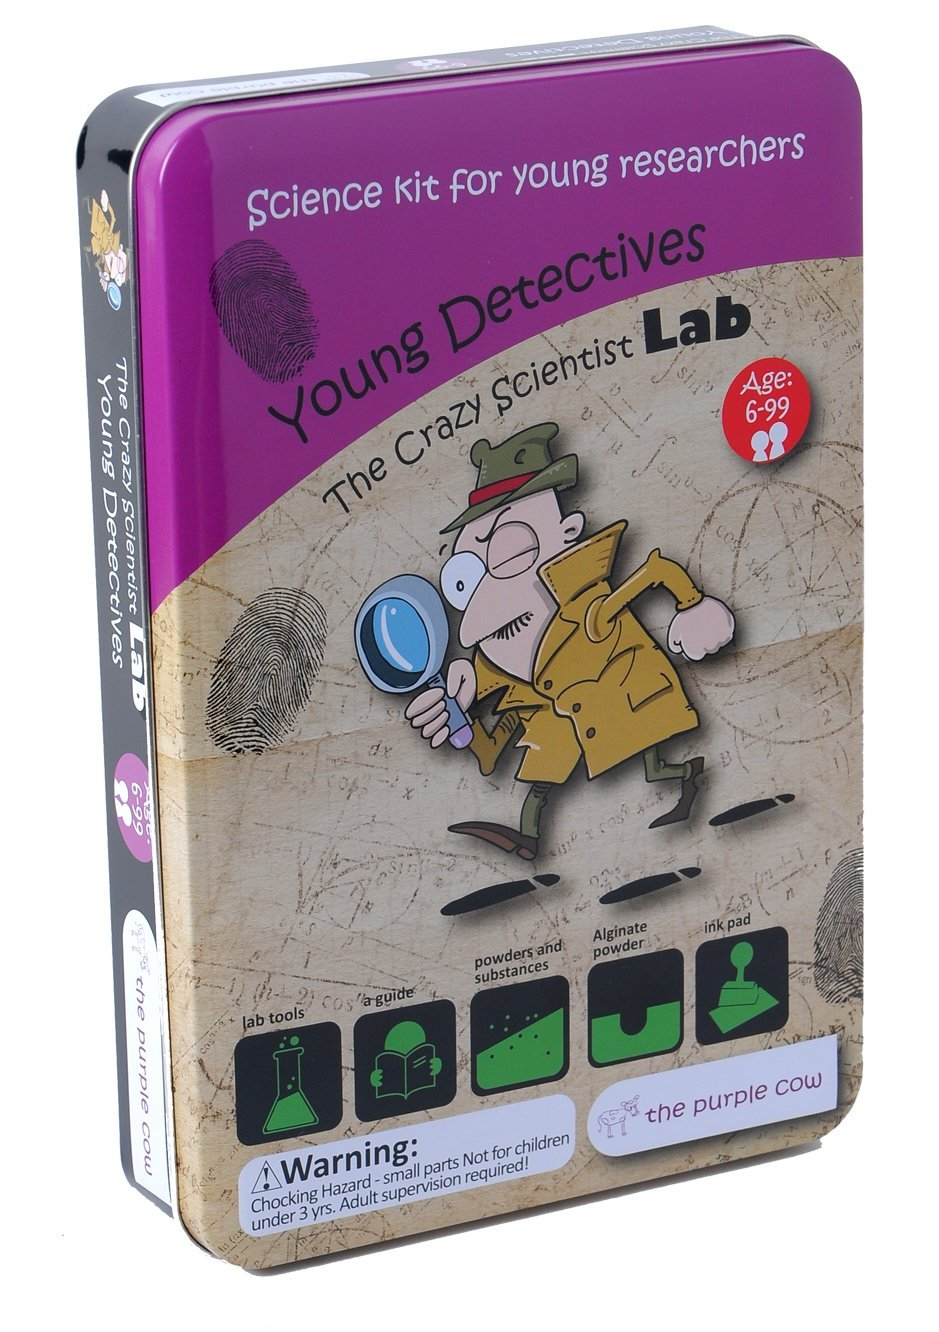 The Purple Cow - Young Detectives Science Kits for Kids from The Famous Crazy Scientist LAB Series